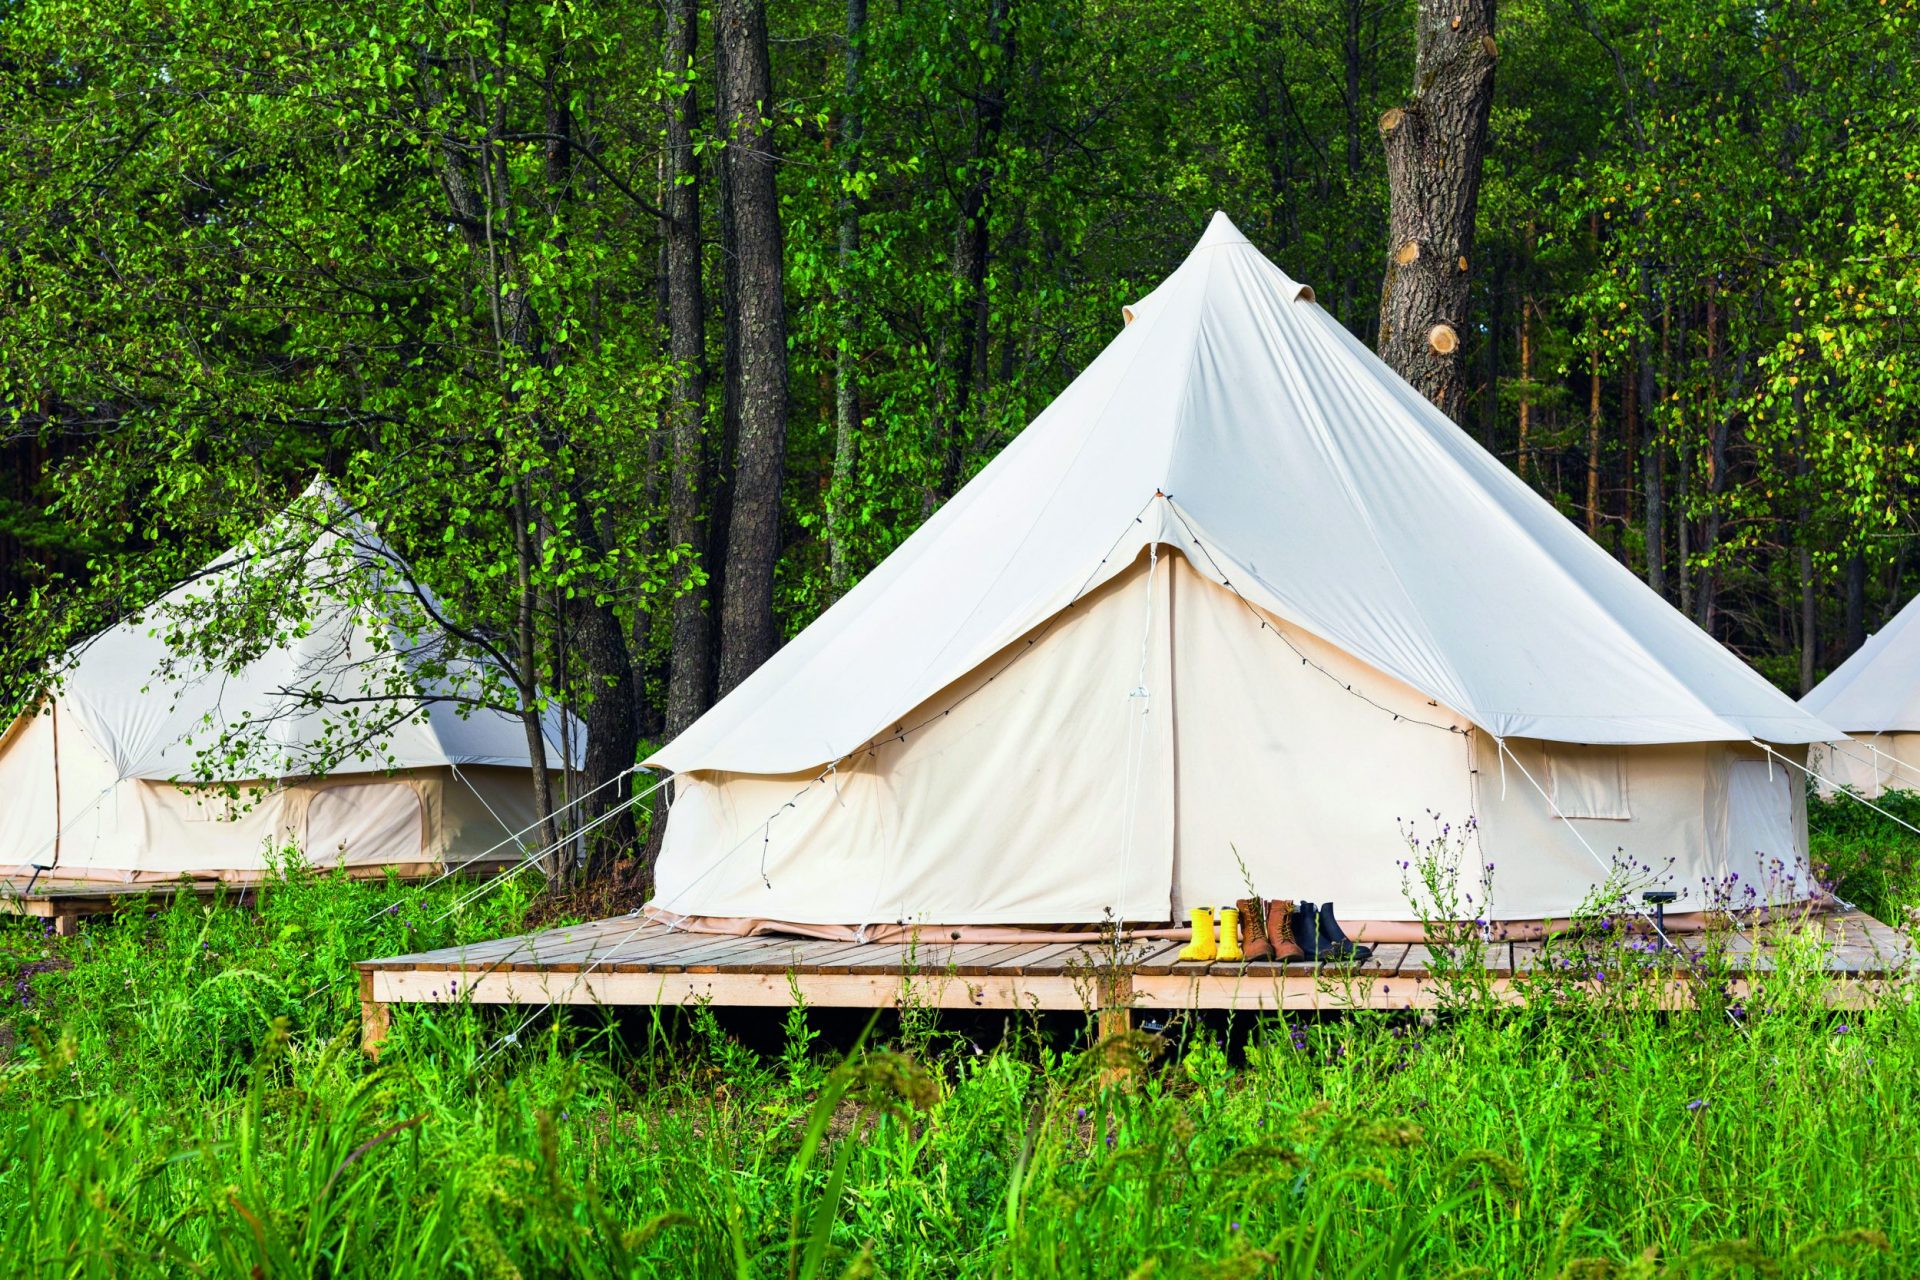 Glamping as a diversification option